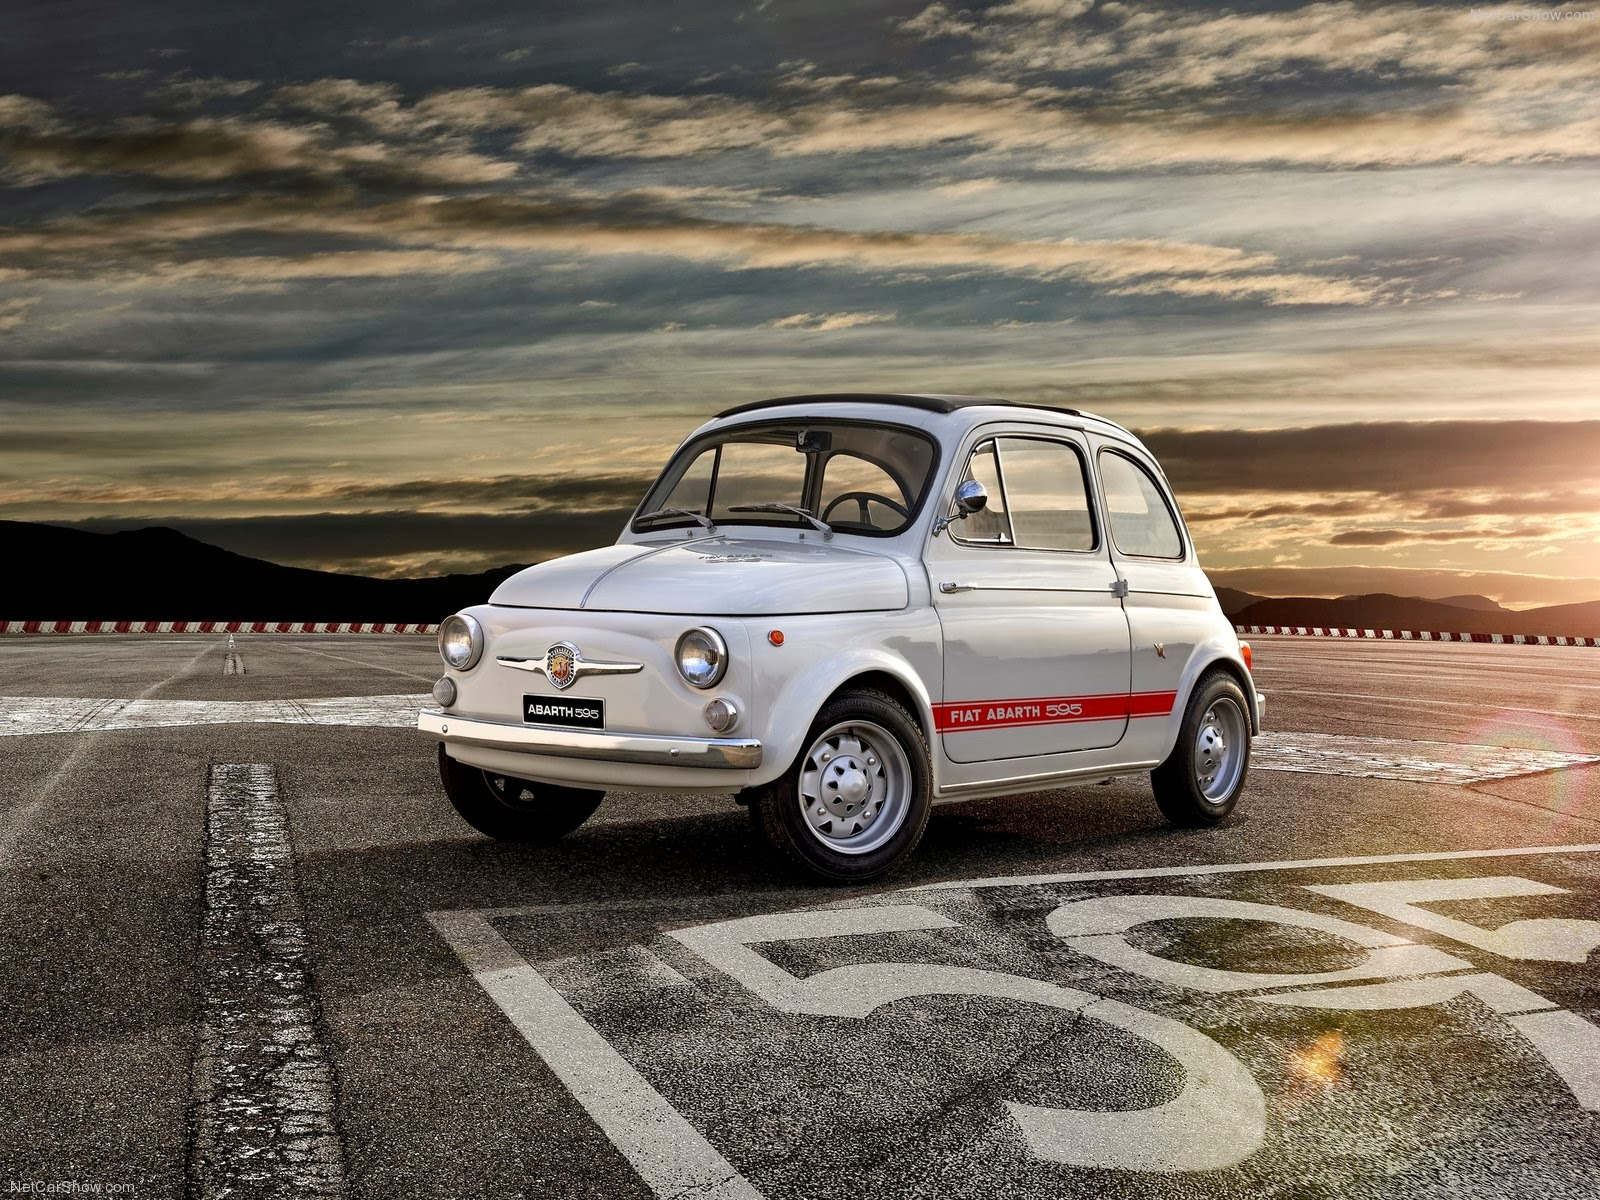 stormwheels 2014 50th anniversary fiat 500 595 abarth. Black Bedroom Furniture Sets. Home Design Ideas